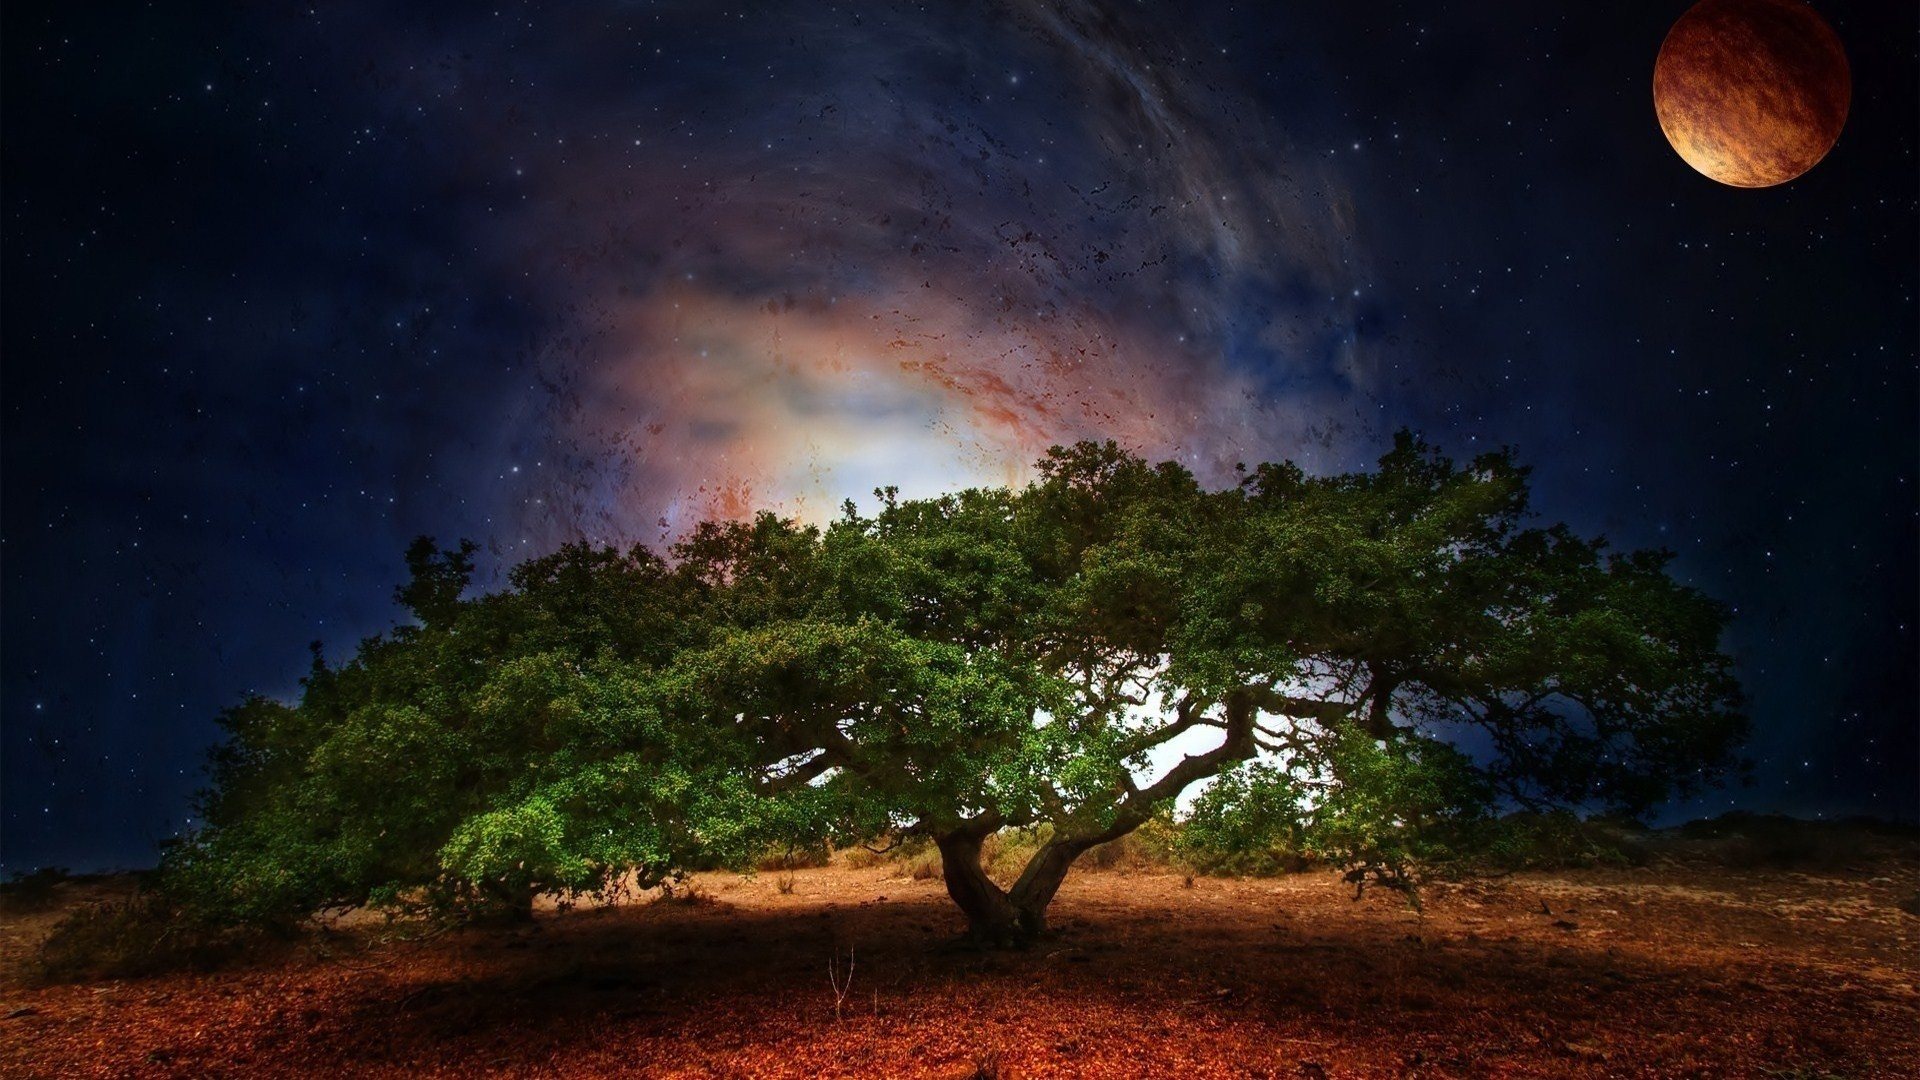 Milky Way Galaxy Visible In The Night Sky Wallpaper 640×1136 Galaxy Sky  Wallpapers (